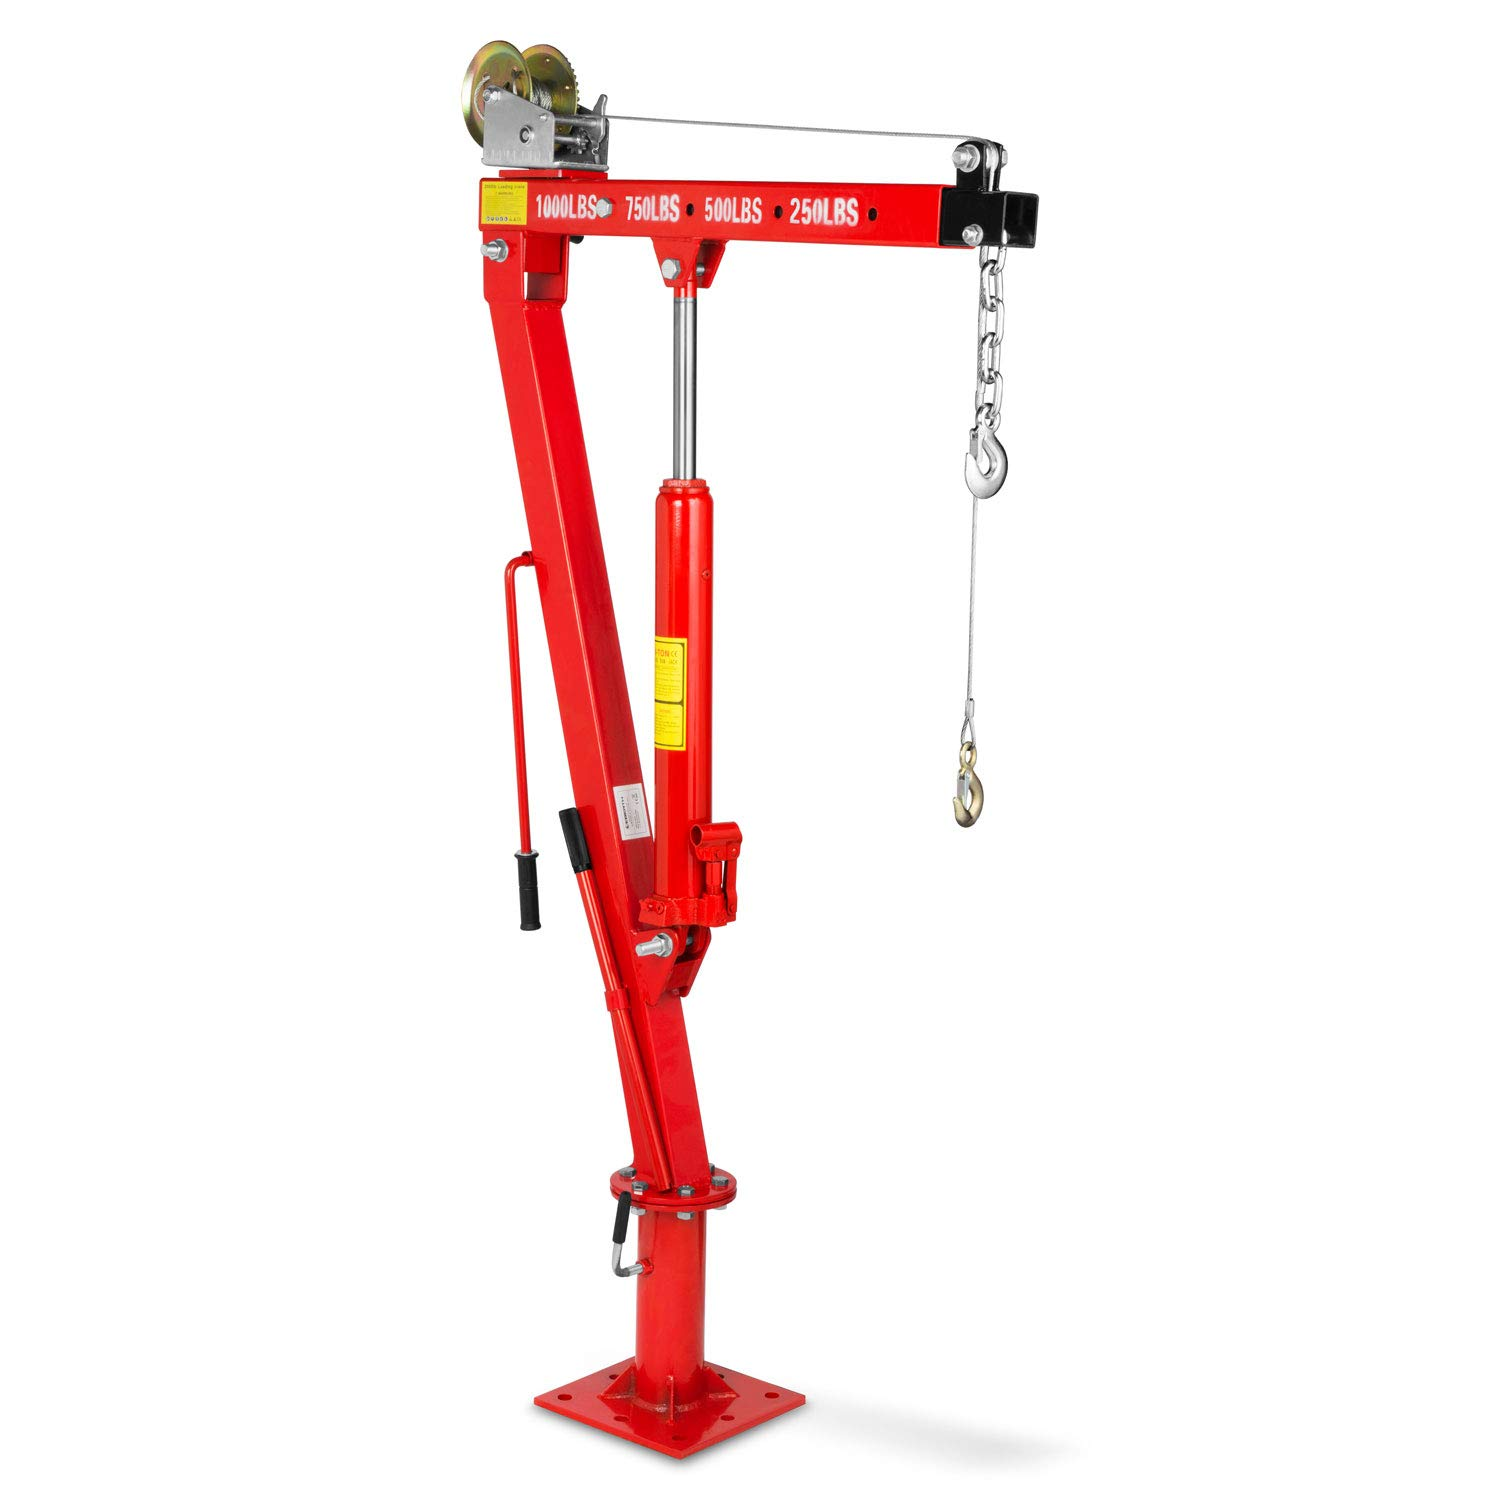 EBERTH Professional Drywall Lift XXL 217-460 cm Working Height, 68 kg Payload, 290 cm Load arm width, Height-adjustable, Foldable